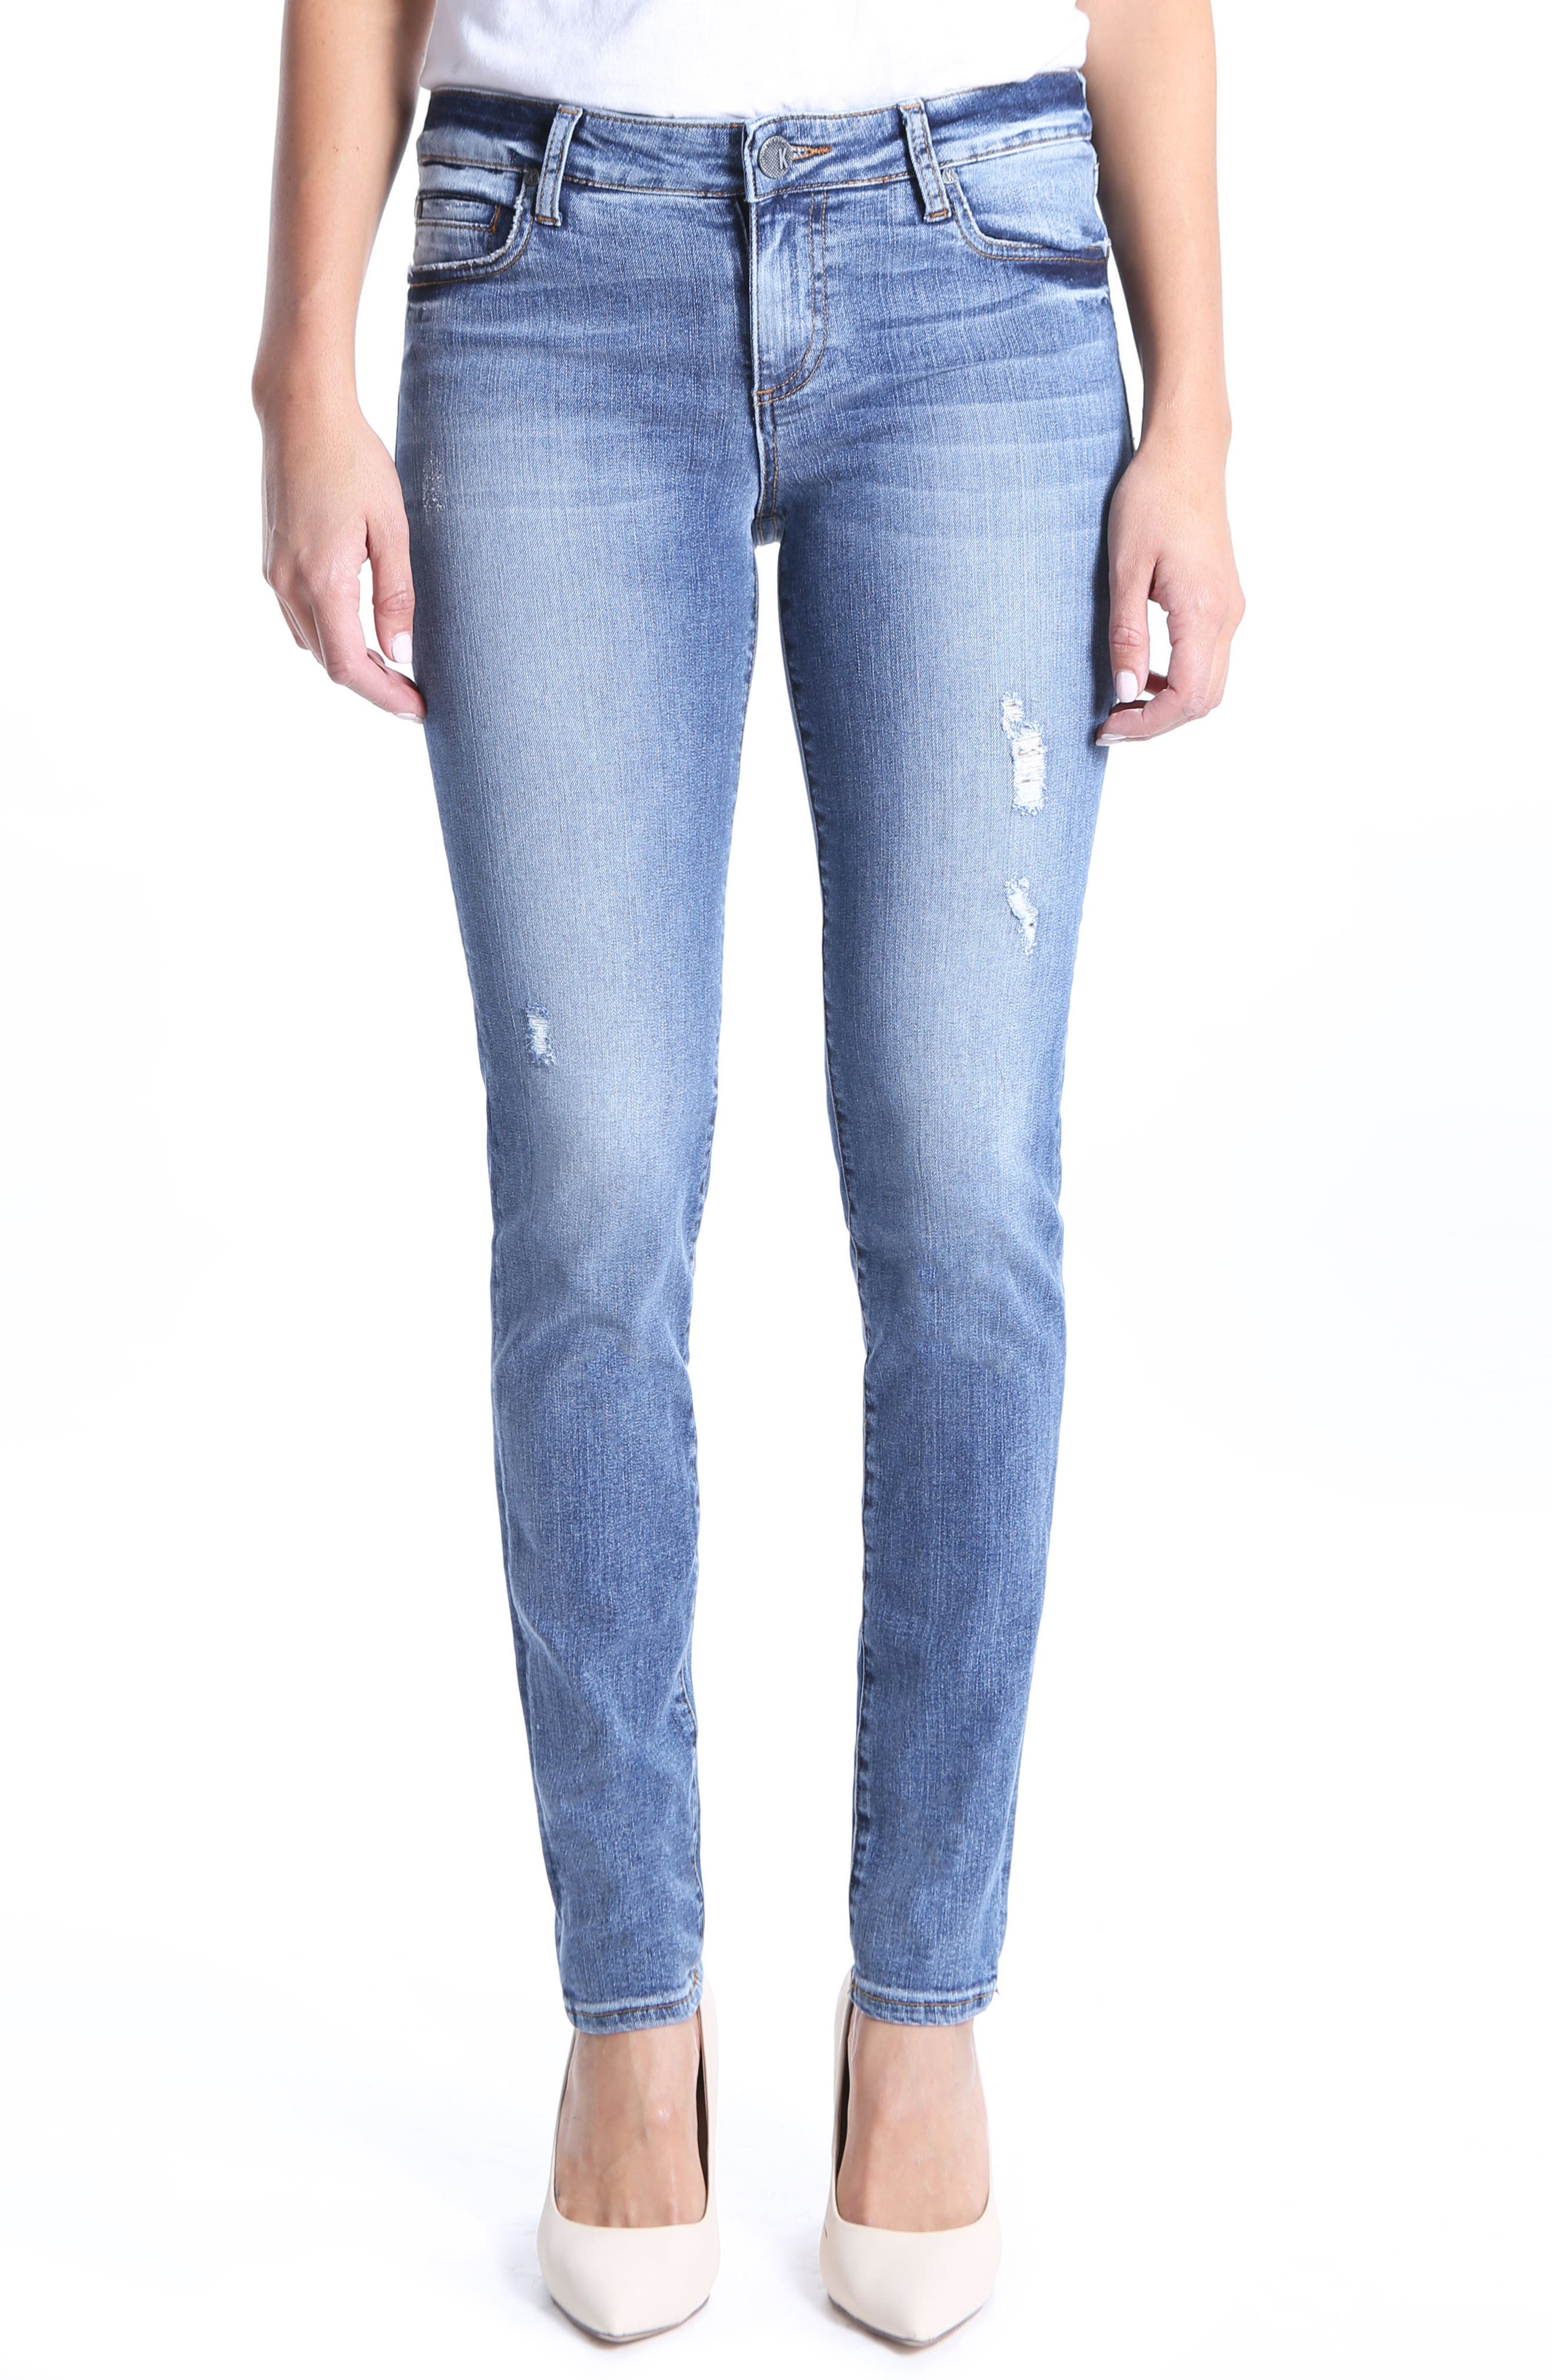 Diana Stretch Skinny Jeans,                             Main thumbnail 1, color,                             Clarified